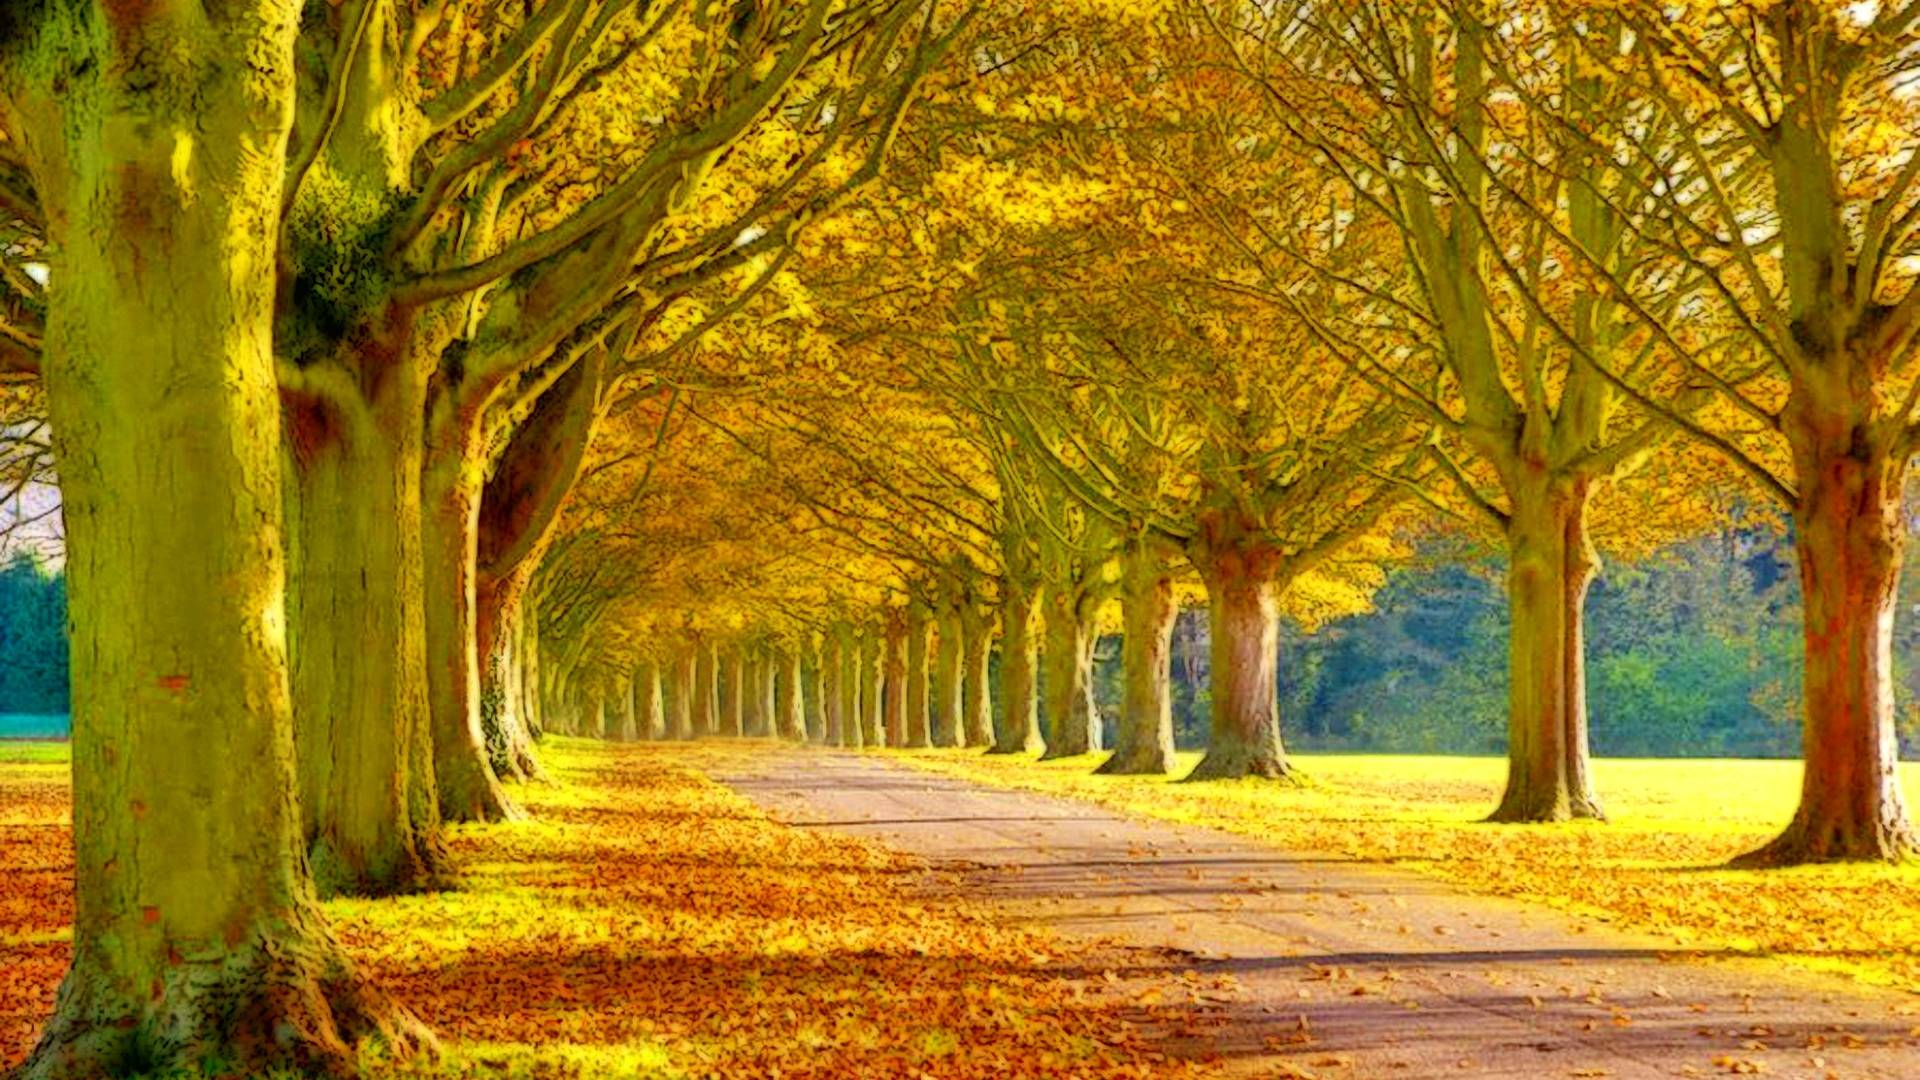 Nice road nature wallpaper